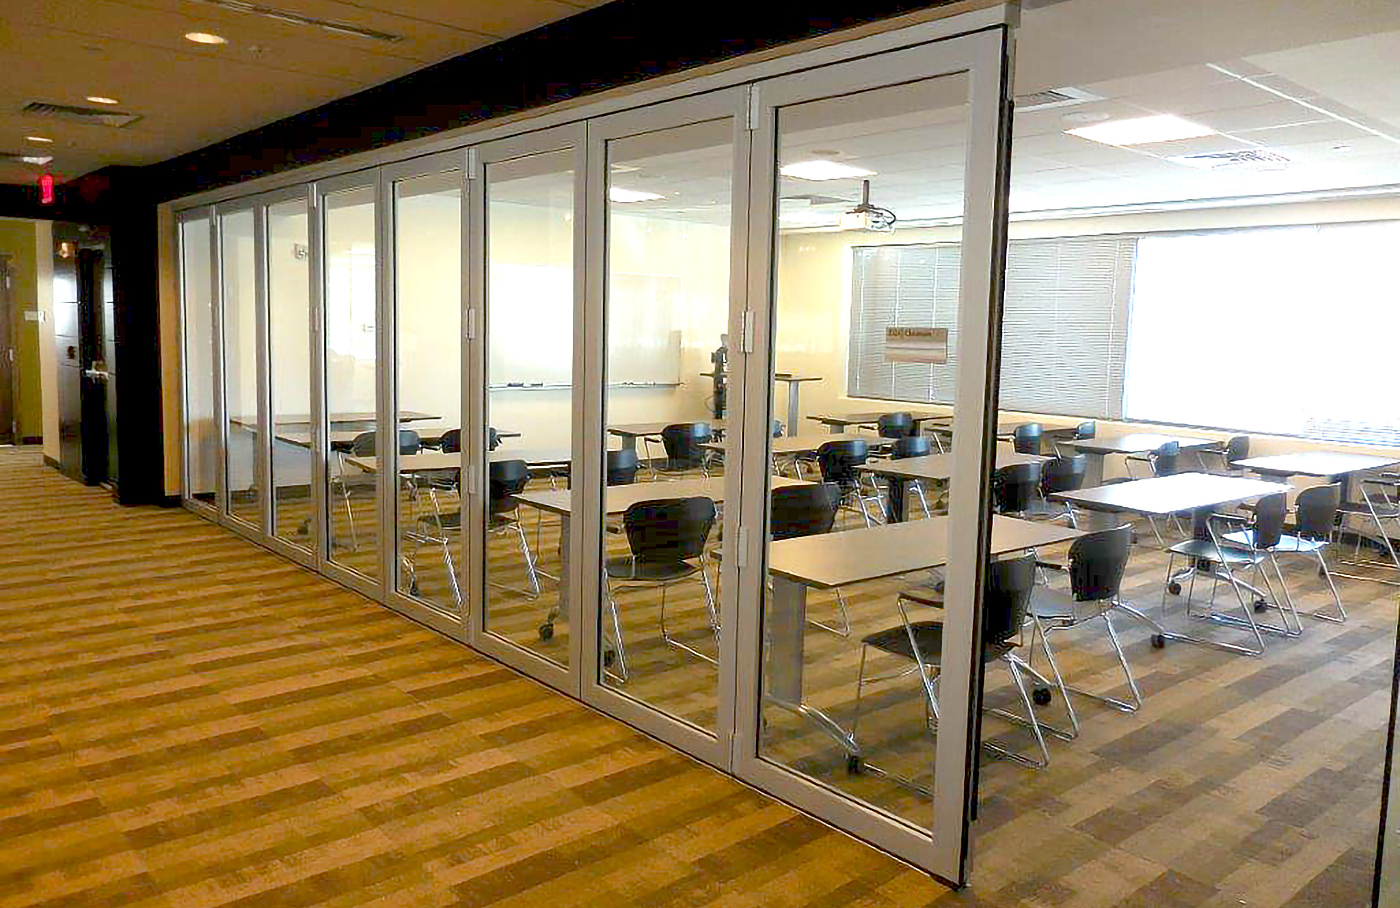 This project features multiple folding glass wall systems with all wall configurations.